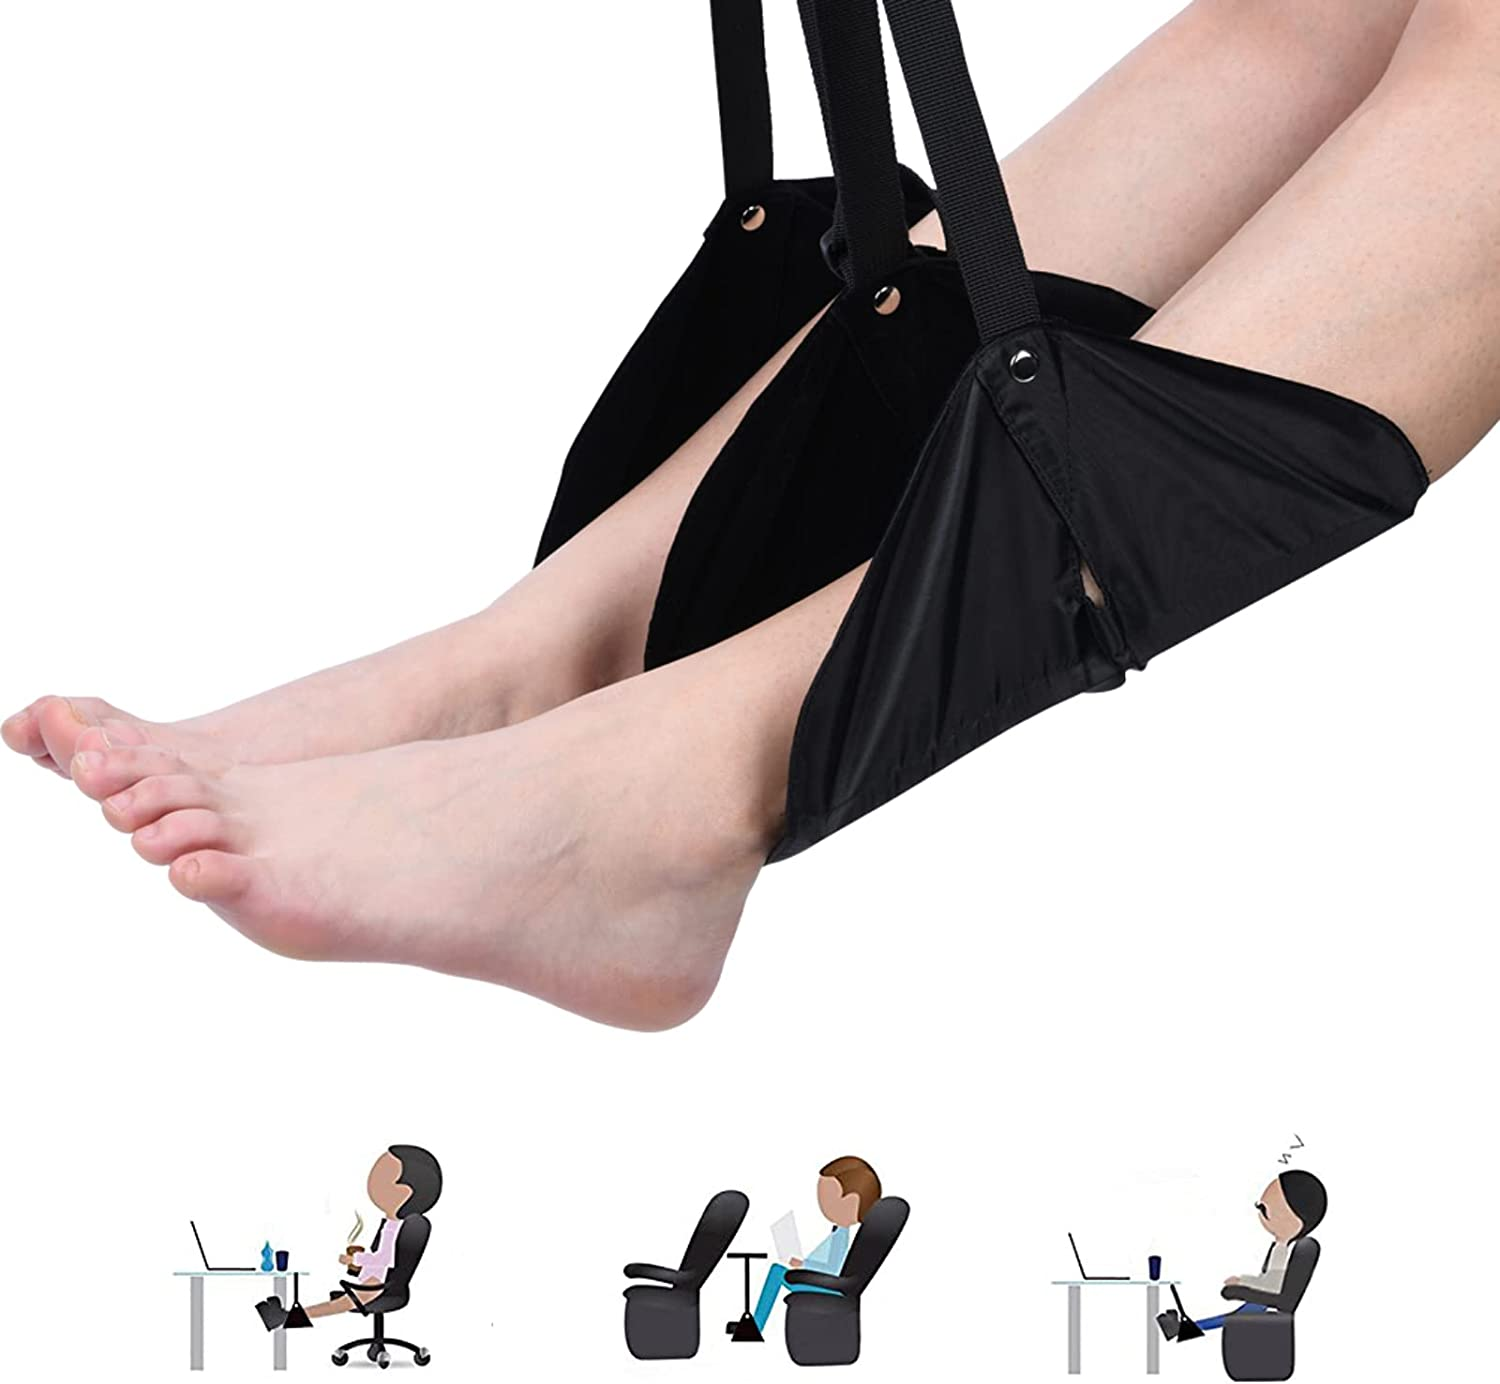 Brrnoo Airplane Footrest Foot Free shipping anywhere in the nation Adj Over item handling Carry-On Rest Flight